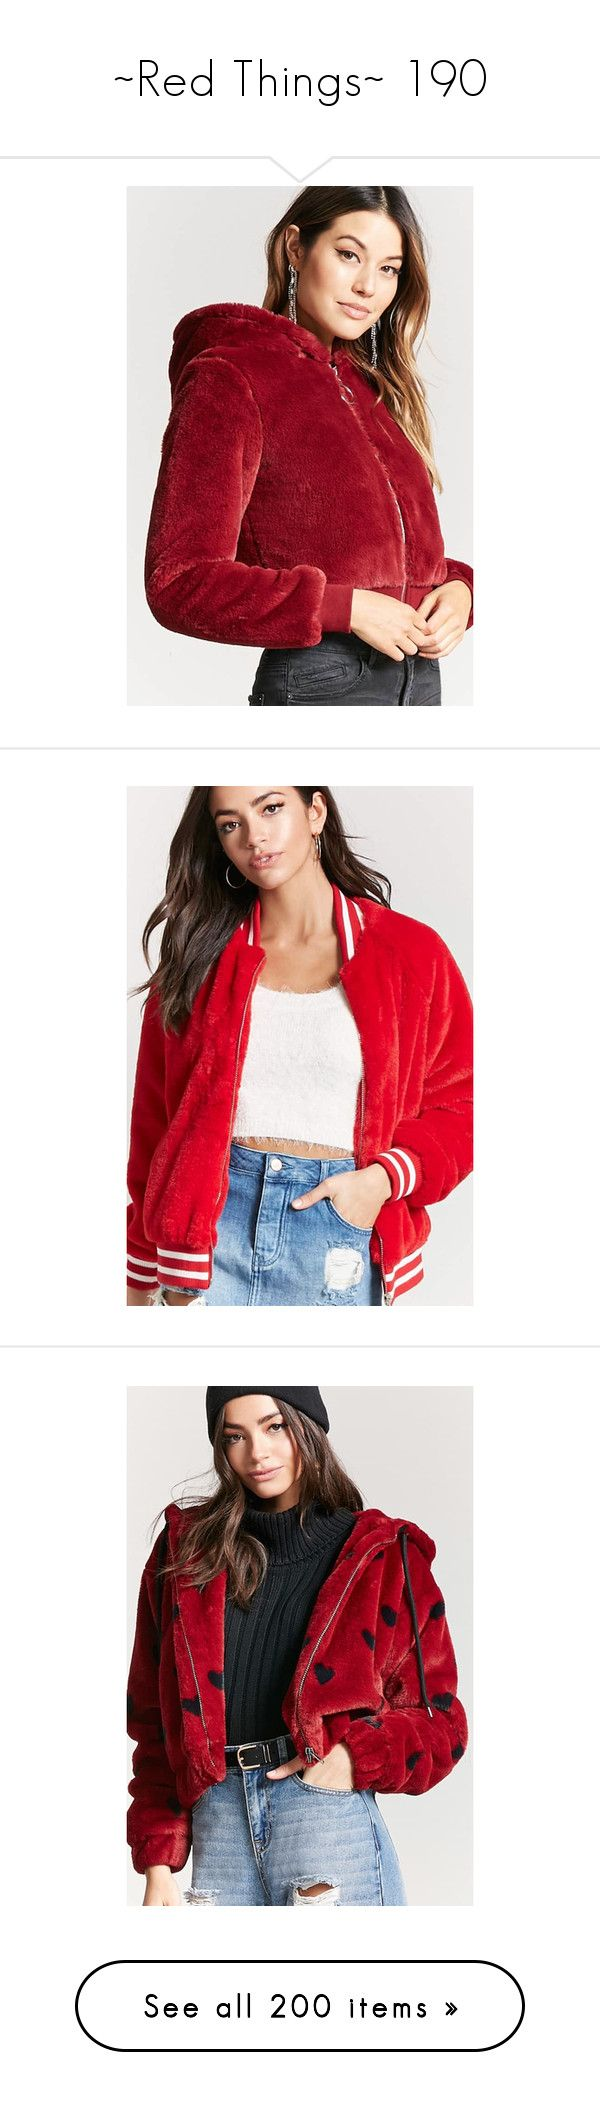 """""""~Red Things~ 190"""" by my-shiny-shackles on Polyvore featuring red, outerwear, jackets, forever 21, zip front jacket, hooded jacket, faux fur hood jacket, forever 21 jackets, long varsity jacket and pocket jacket"""